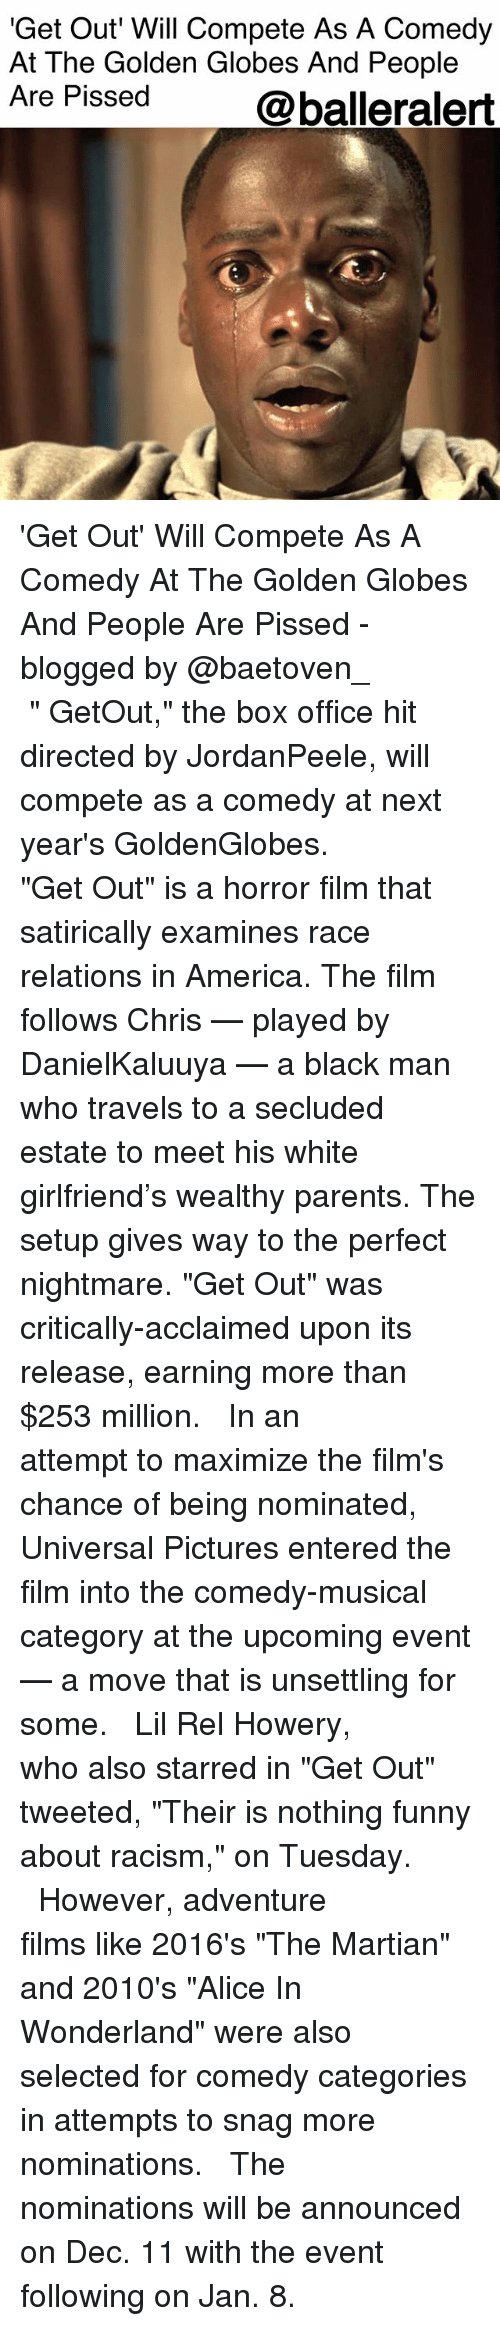 "America, Funny, and Golden Globes: 'Get Out Will Compete As A Comedy  At The Golden Globes And People  Are Pissed  @balleralert 'Get Out' Will Compete As A Comedy At The Golden Globes And People Are Pissed - blogged by @baetoven_ ⠀⠀⠀⠀⠀⠀⠀ ⠀⠀⠀⠀⠀⠀⠀ "" GetOut,"" the box office hit directed by JordanPeele, will compete as a comedy at next year's GoldenGlobes. ⠀⠀⠀⠀⠀⠀⠀ ⠀⠀⠀⠀⠀⠀⠀ ""Get Out"" is a horror film that satirically examines race relations in America. The film follows Chris — played by DanielKaluuya — a black man who travels to a secluded estate to meet his white girlfriend's wealthy parents. The setup gives way to the perfect nightmare. ""Get Out"" was critically-acclaimed upon its release, earning more than $253 million. ⠀⠀⠀⠀⠀⠀⠀ ⠀⠀⠀⠀⠀⠀⠀ In an attempt to maximize the film's chance of being nominated, Universal Pictures entered the film into the comedy-musical category at the upcoming event — a move that is unsettling for some. ⠀⠀⠀⠀⠀⠀⠀ ⠀⠀⠀⠀⠀⠀⠀ Lil Rel Howery, who also starred in ""Get Out"" tweeted, ""Their is nothing funny about racism,"" on Tuesday. ⠀⠀⠀⠀⠀⠀⠀ ⠀⠀⠀⠀⠀⠀⠀ However, adventure films like 2016's ""The Martian"" and 2010's ""Alice In Wonderland"" were also selected for comedy categories in attempts to snag more nominations. ⠀⠀⠀⠀⠀⠀⠀ ⠀⠀⠀⠀⠀⠀⠀ The nominations will be announced on Dec. 11 with the event following on Jan. 8."